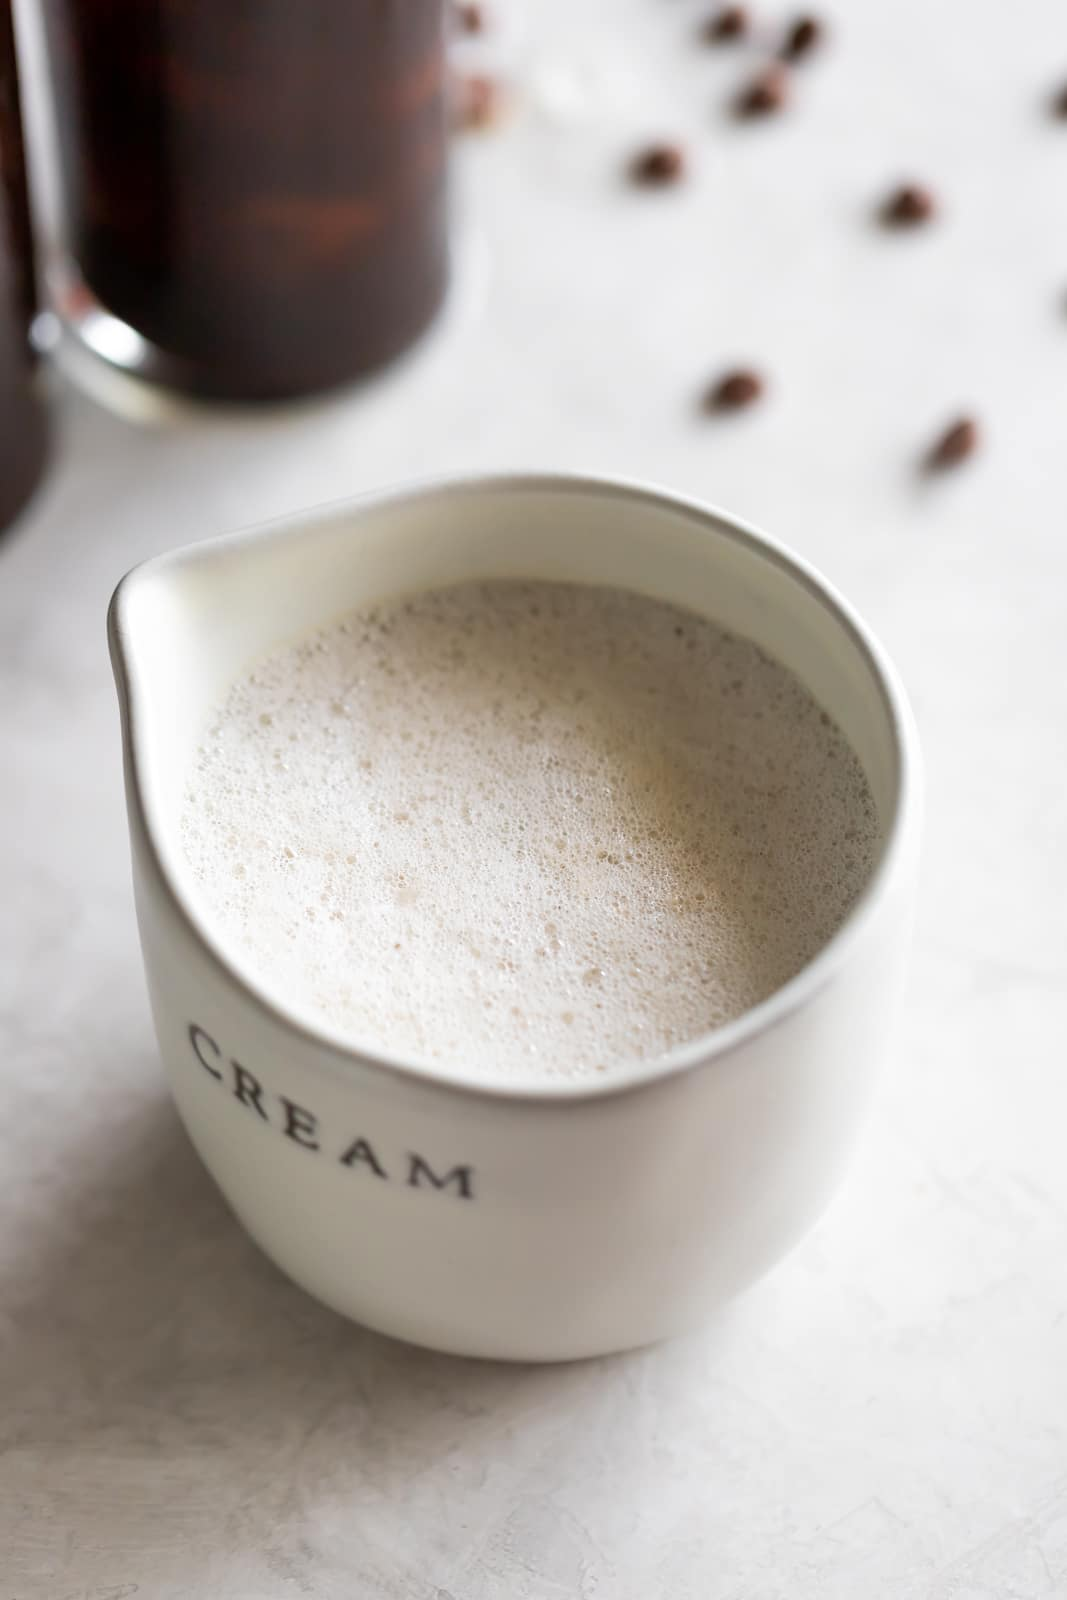 A frothy dairy-free cafe con leche (milk with coffee drink) made iced with sweetened Cuban coffee, creamer, and almond milk.